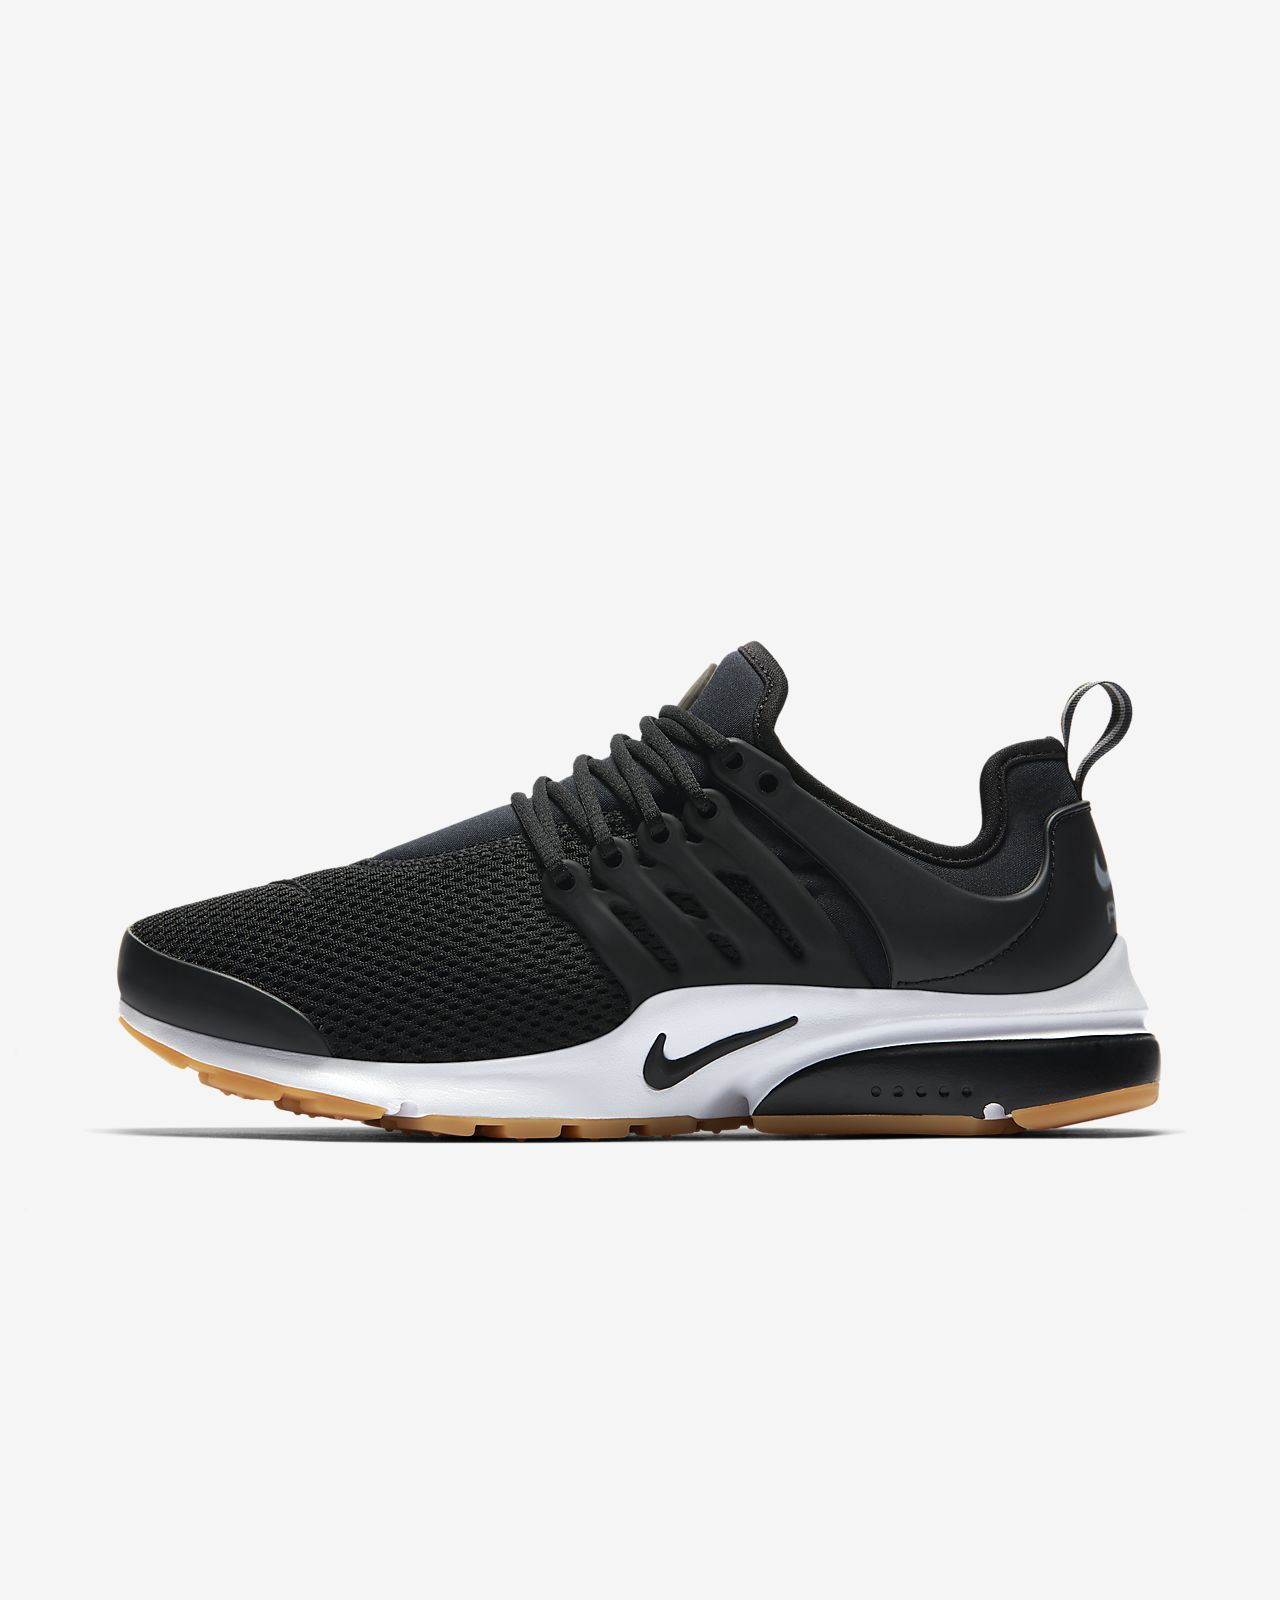 35e55146869 Nike Air Presto Women s Shoe. Nike.com